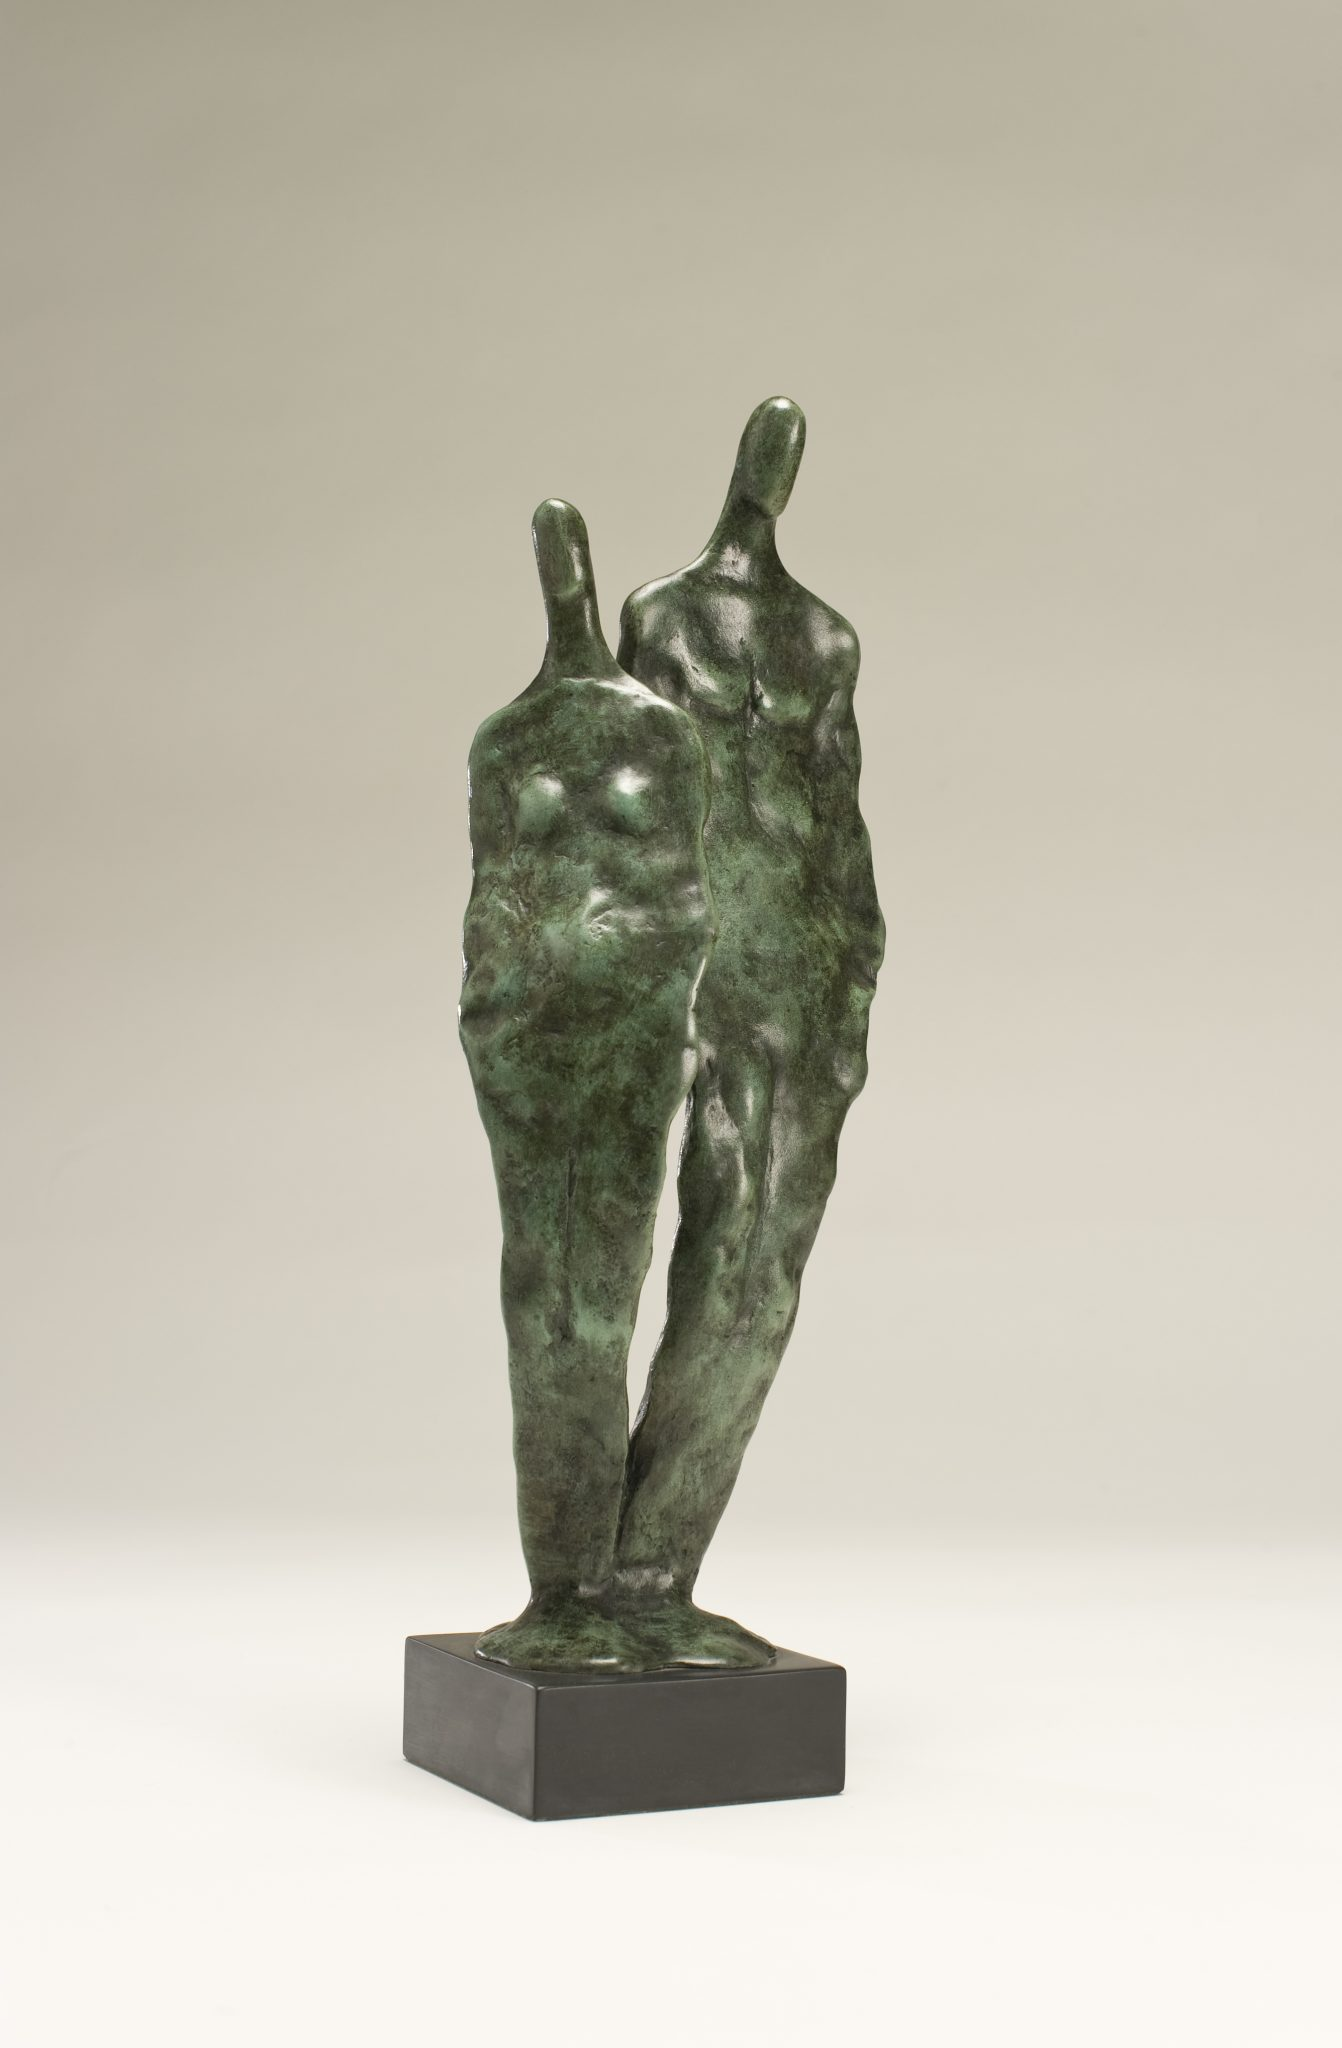 Bronze sculpture of a man and woman